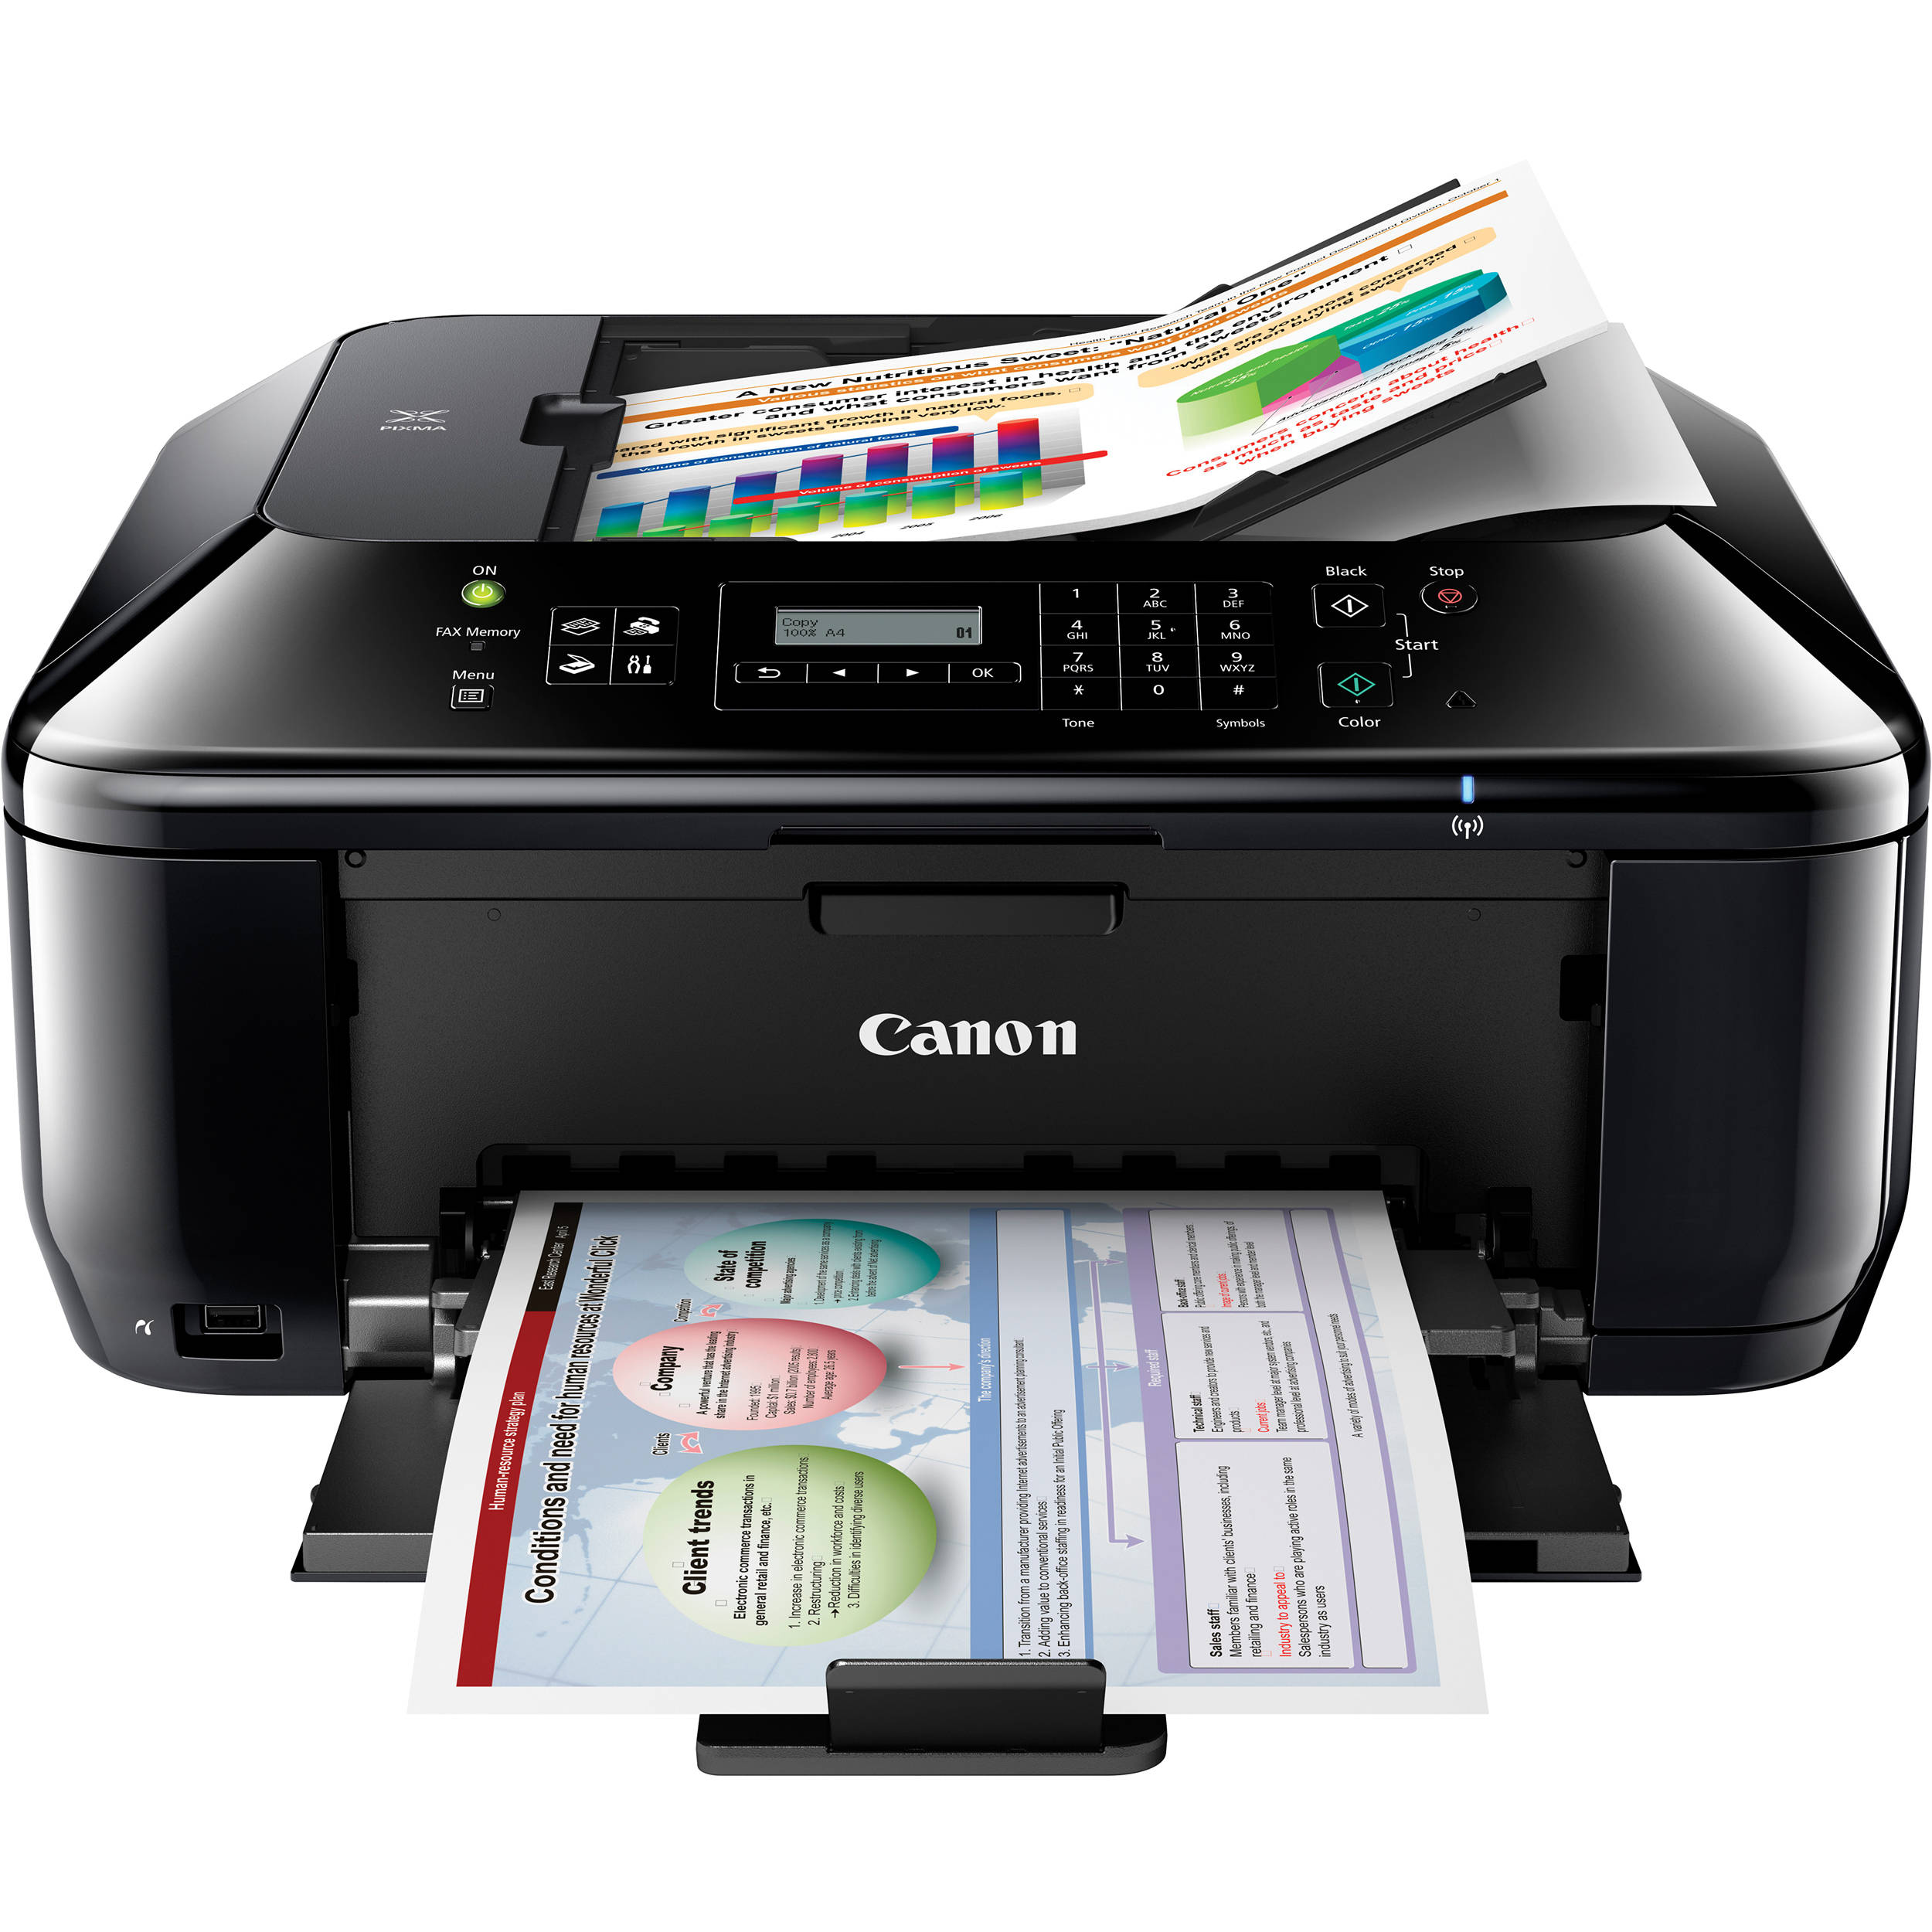 canon pixma mx432 wireless all in one color inkjet canon camcorder manuals download canon fs300 camcorder manual